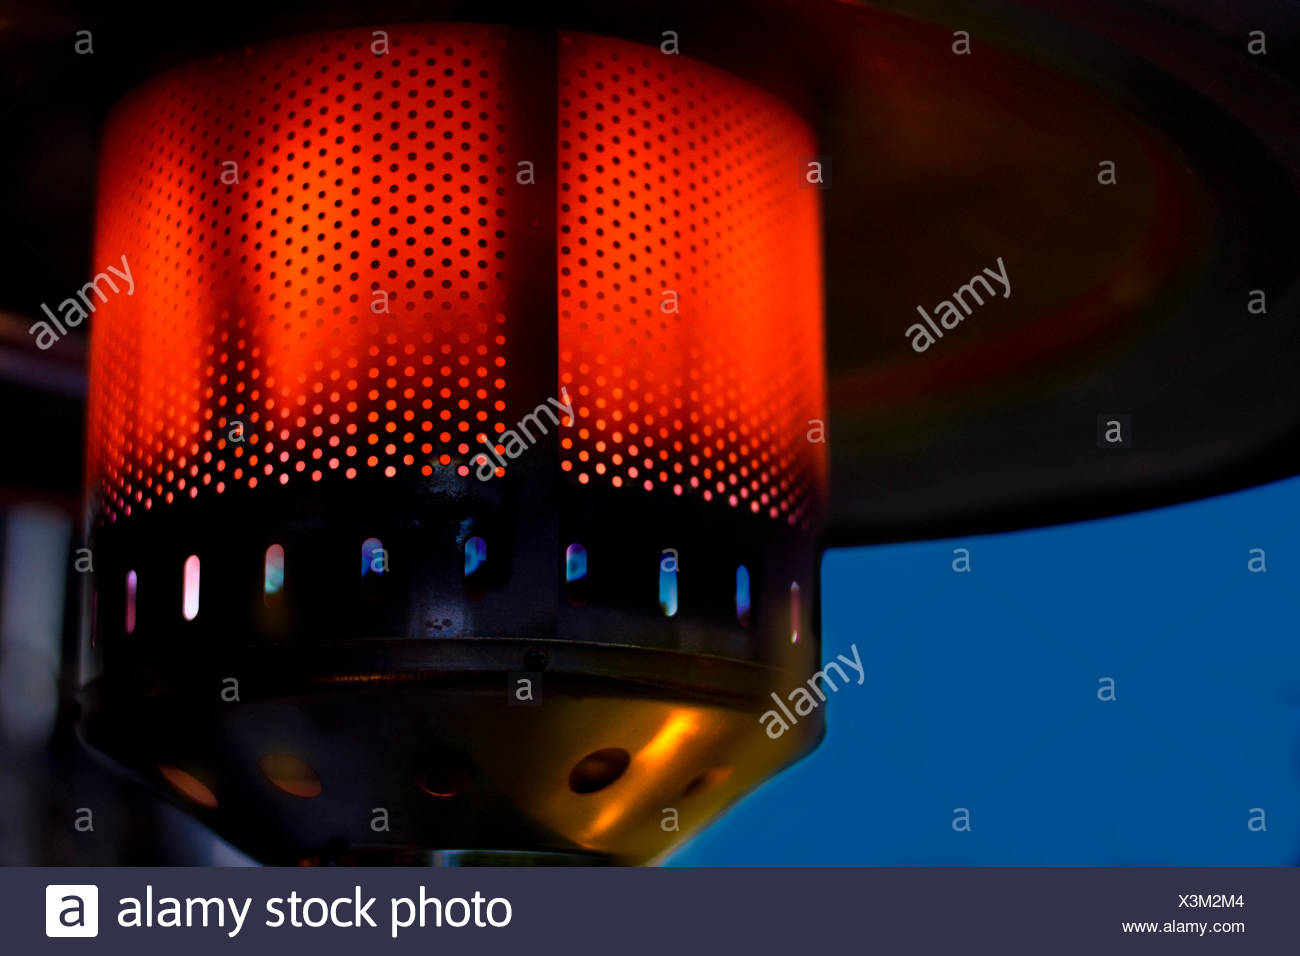 Gas patio heater, at red heat, Germany - Stock Image